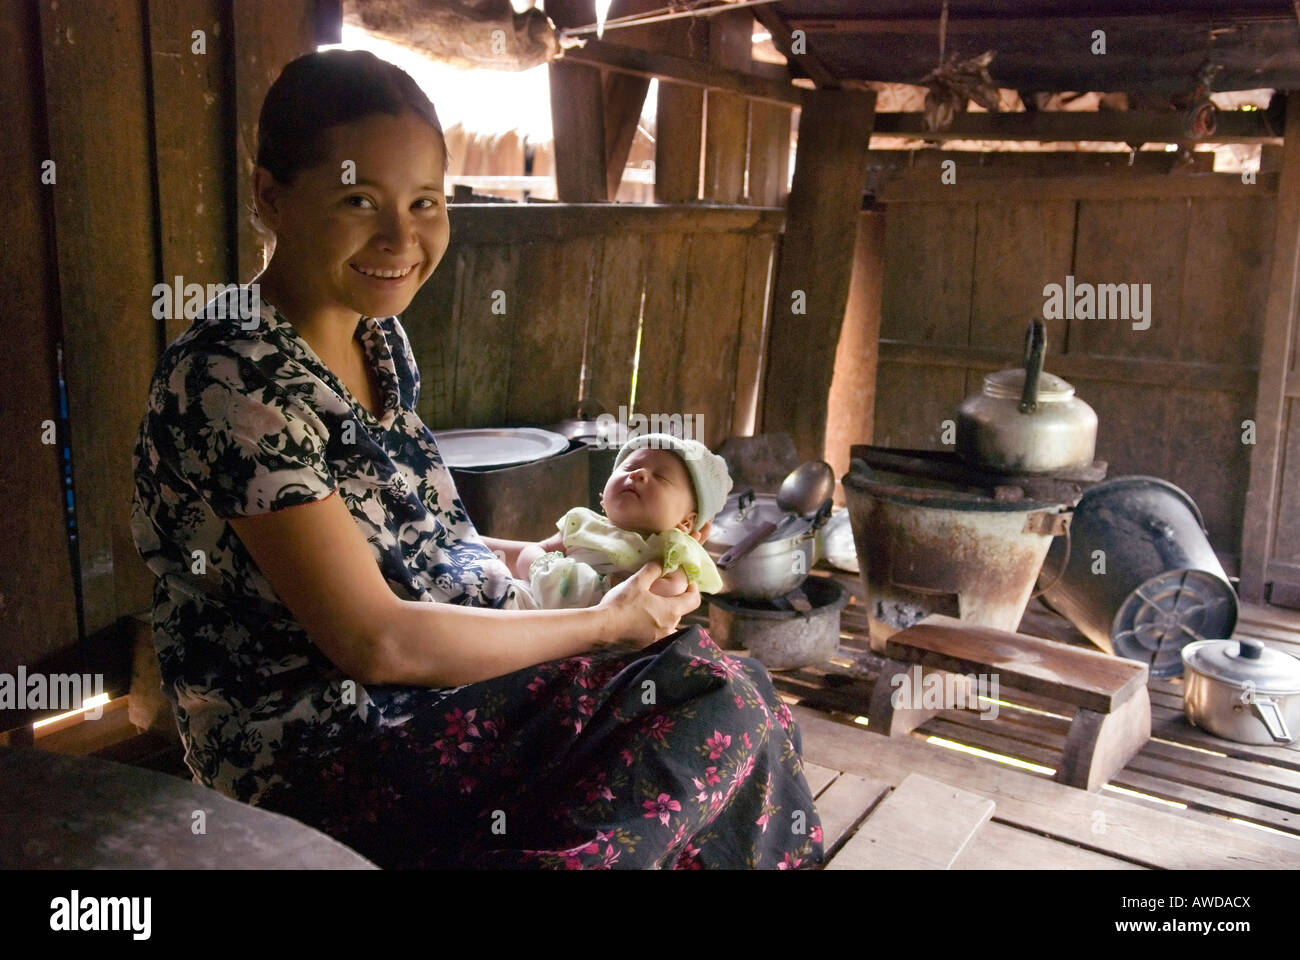 Mother with child in a simple kitchen, Kway Nya Ou village, IDP-Area bordering Thailand near Maesot, Birma - Stock Image